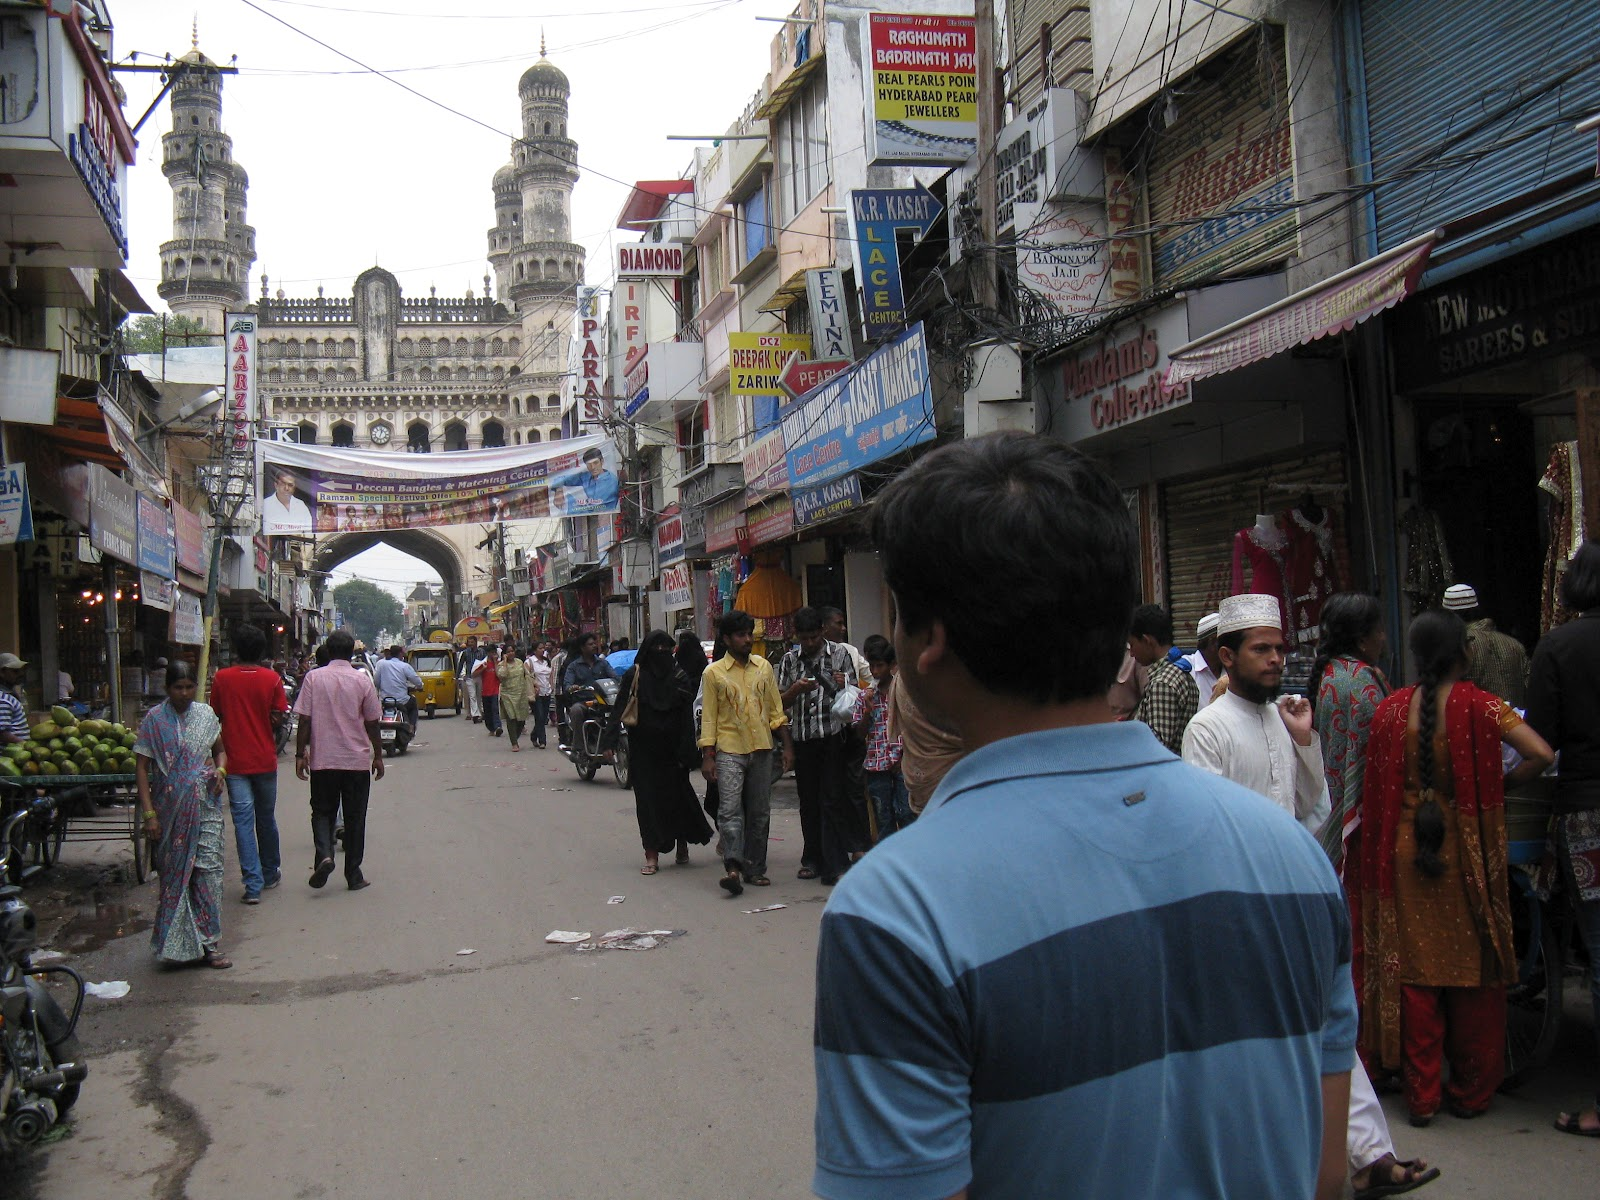 India 2012: Some of the sites in Hyderabad or my home away ...